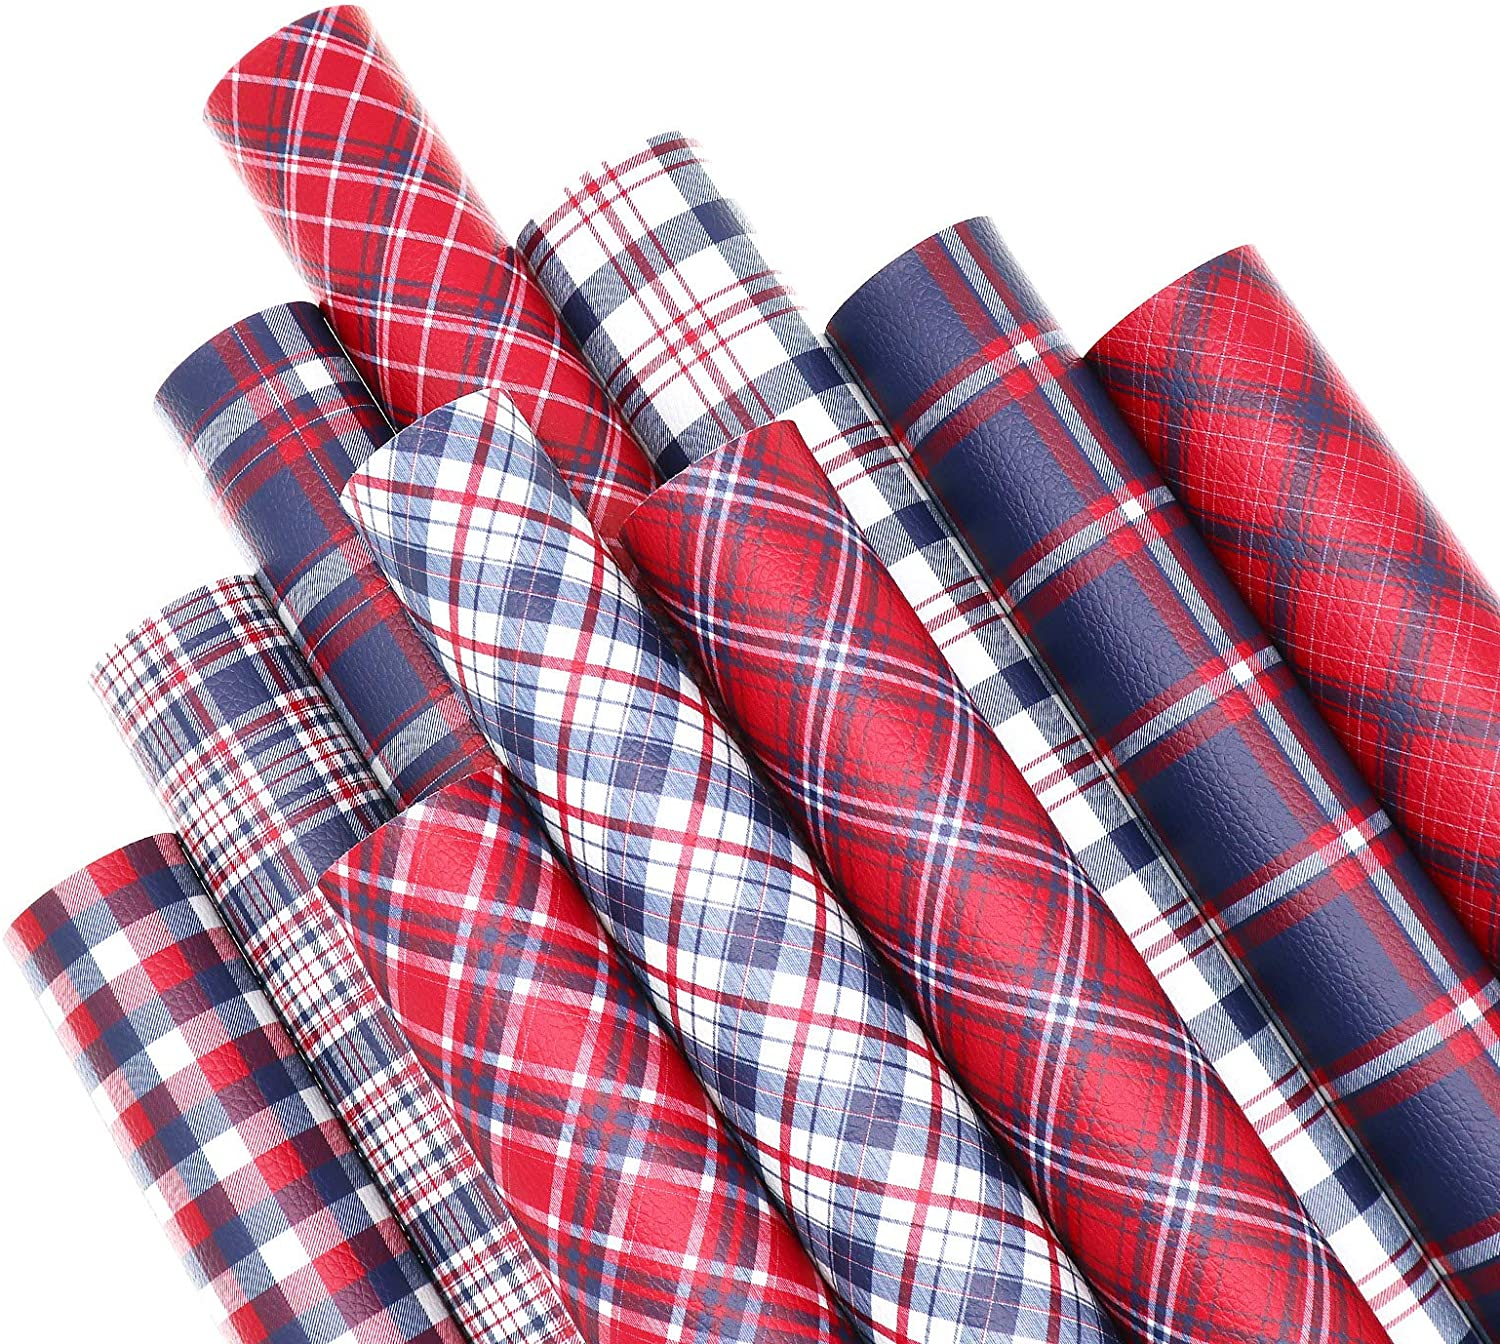 ZAIONE 10PCS/Set Plaid Printed Red Series Faux Leather Sheets Bundle 12inch x 8inch Striped Printed Tartan Checked Synthetic Leather Fabric for Bows & Earring DIY Crafts